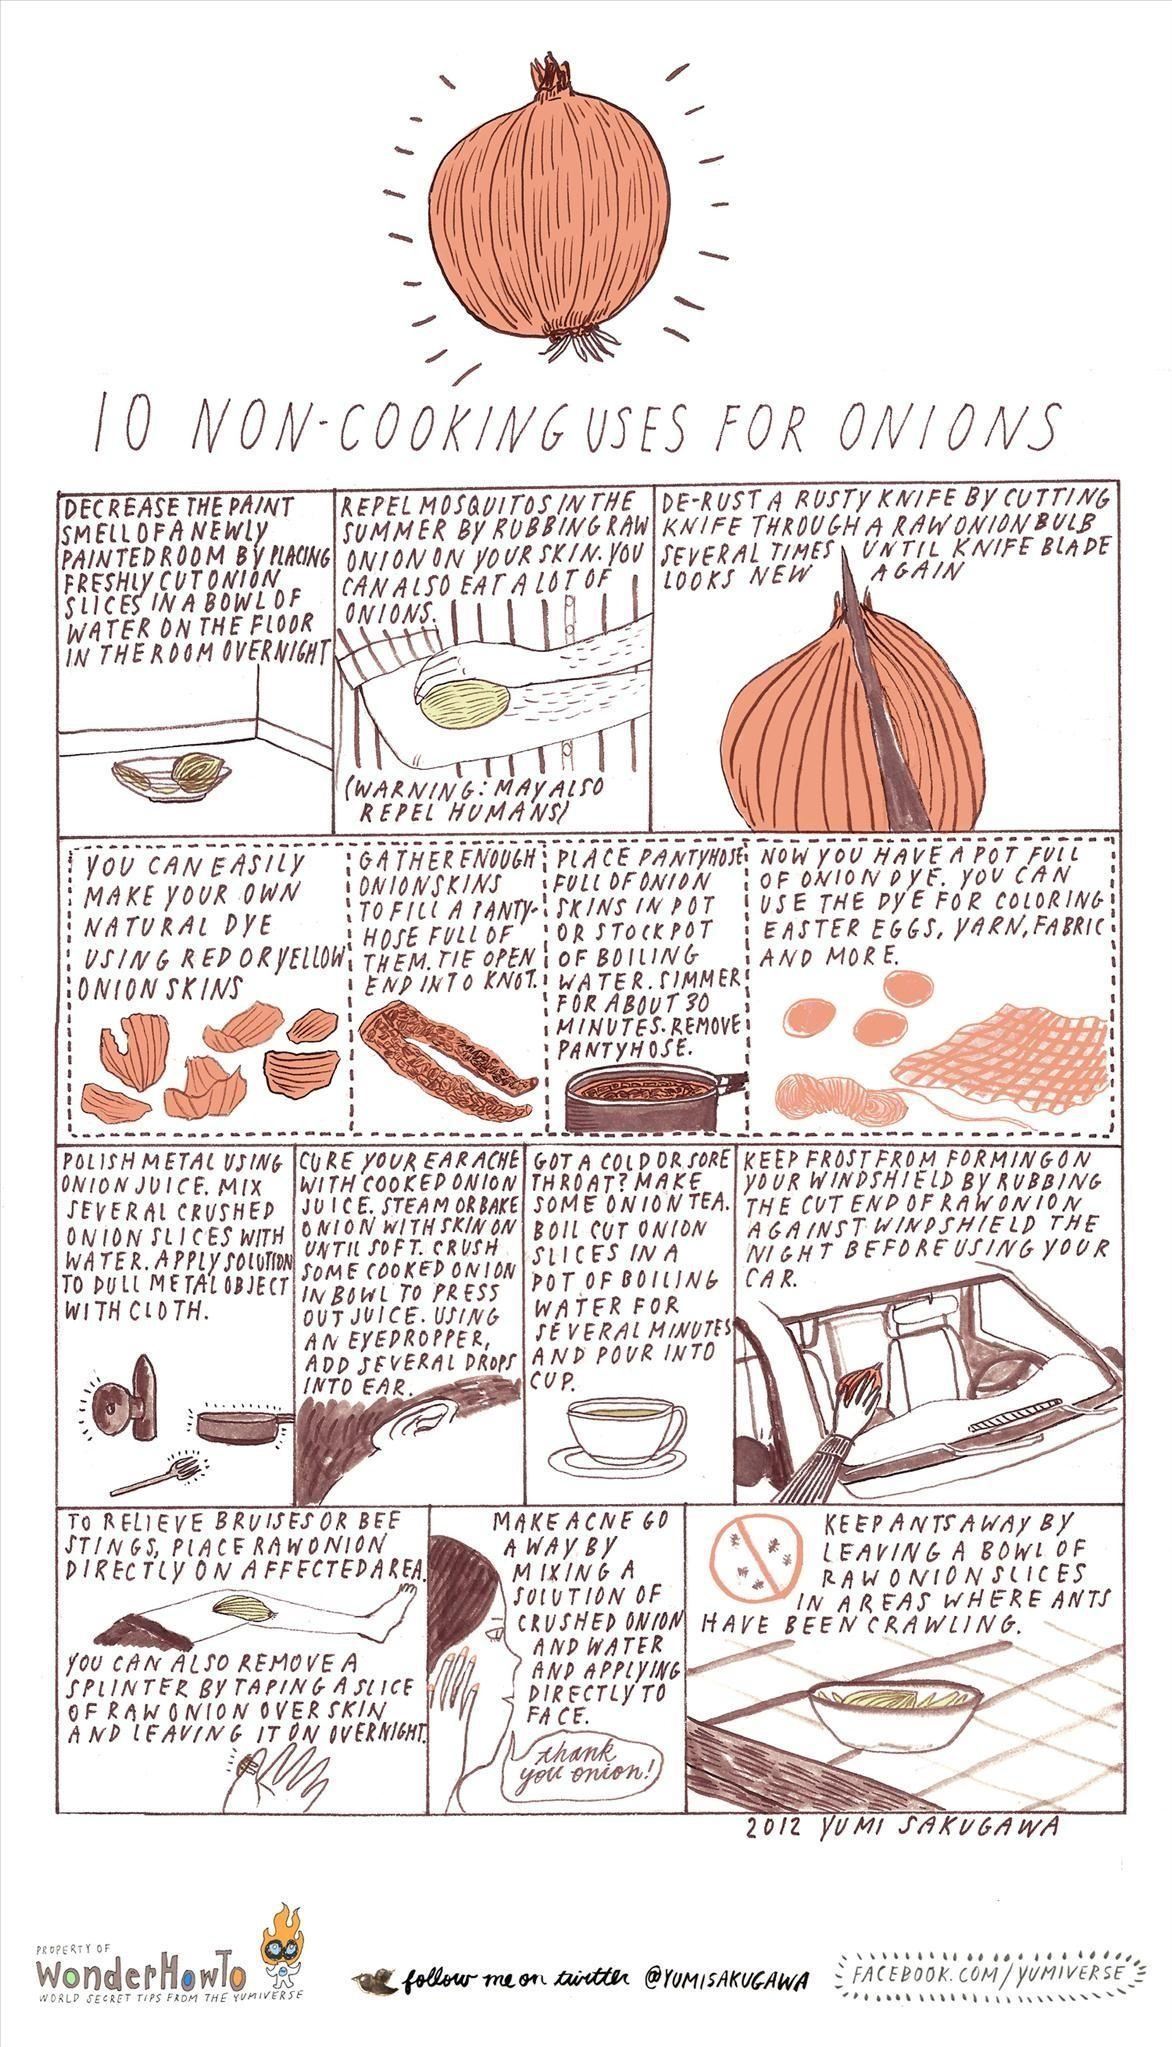 10 Non-Cooking Uses for Onions